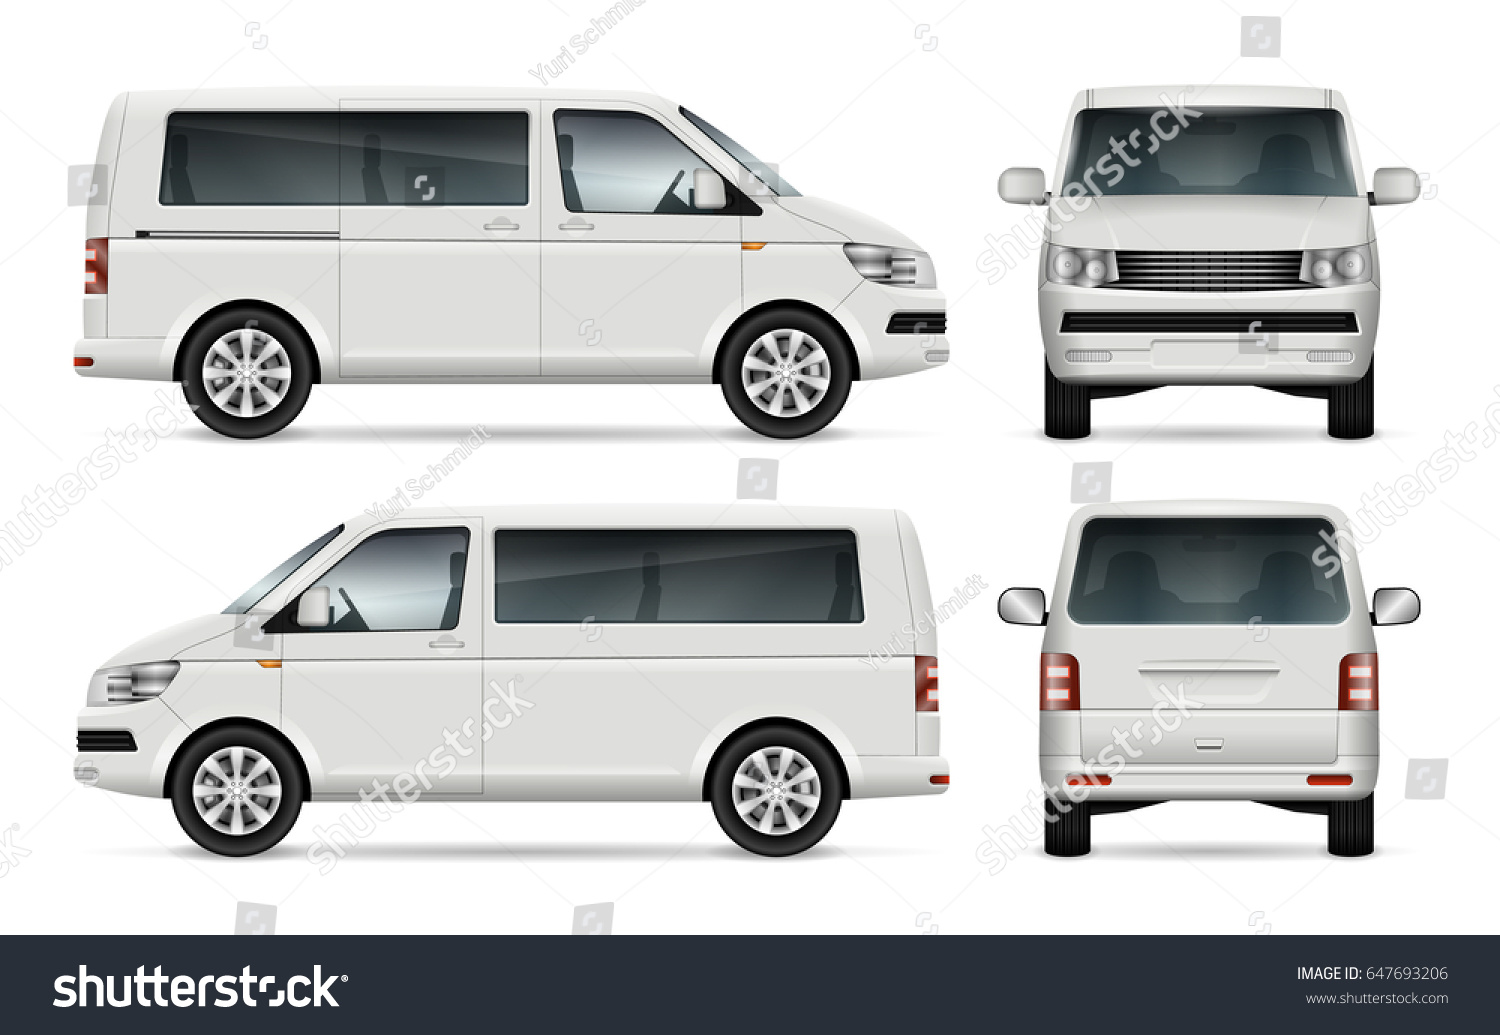 Mini Bus Vector Template Car Branding Stock Vector ...